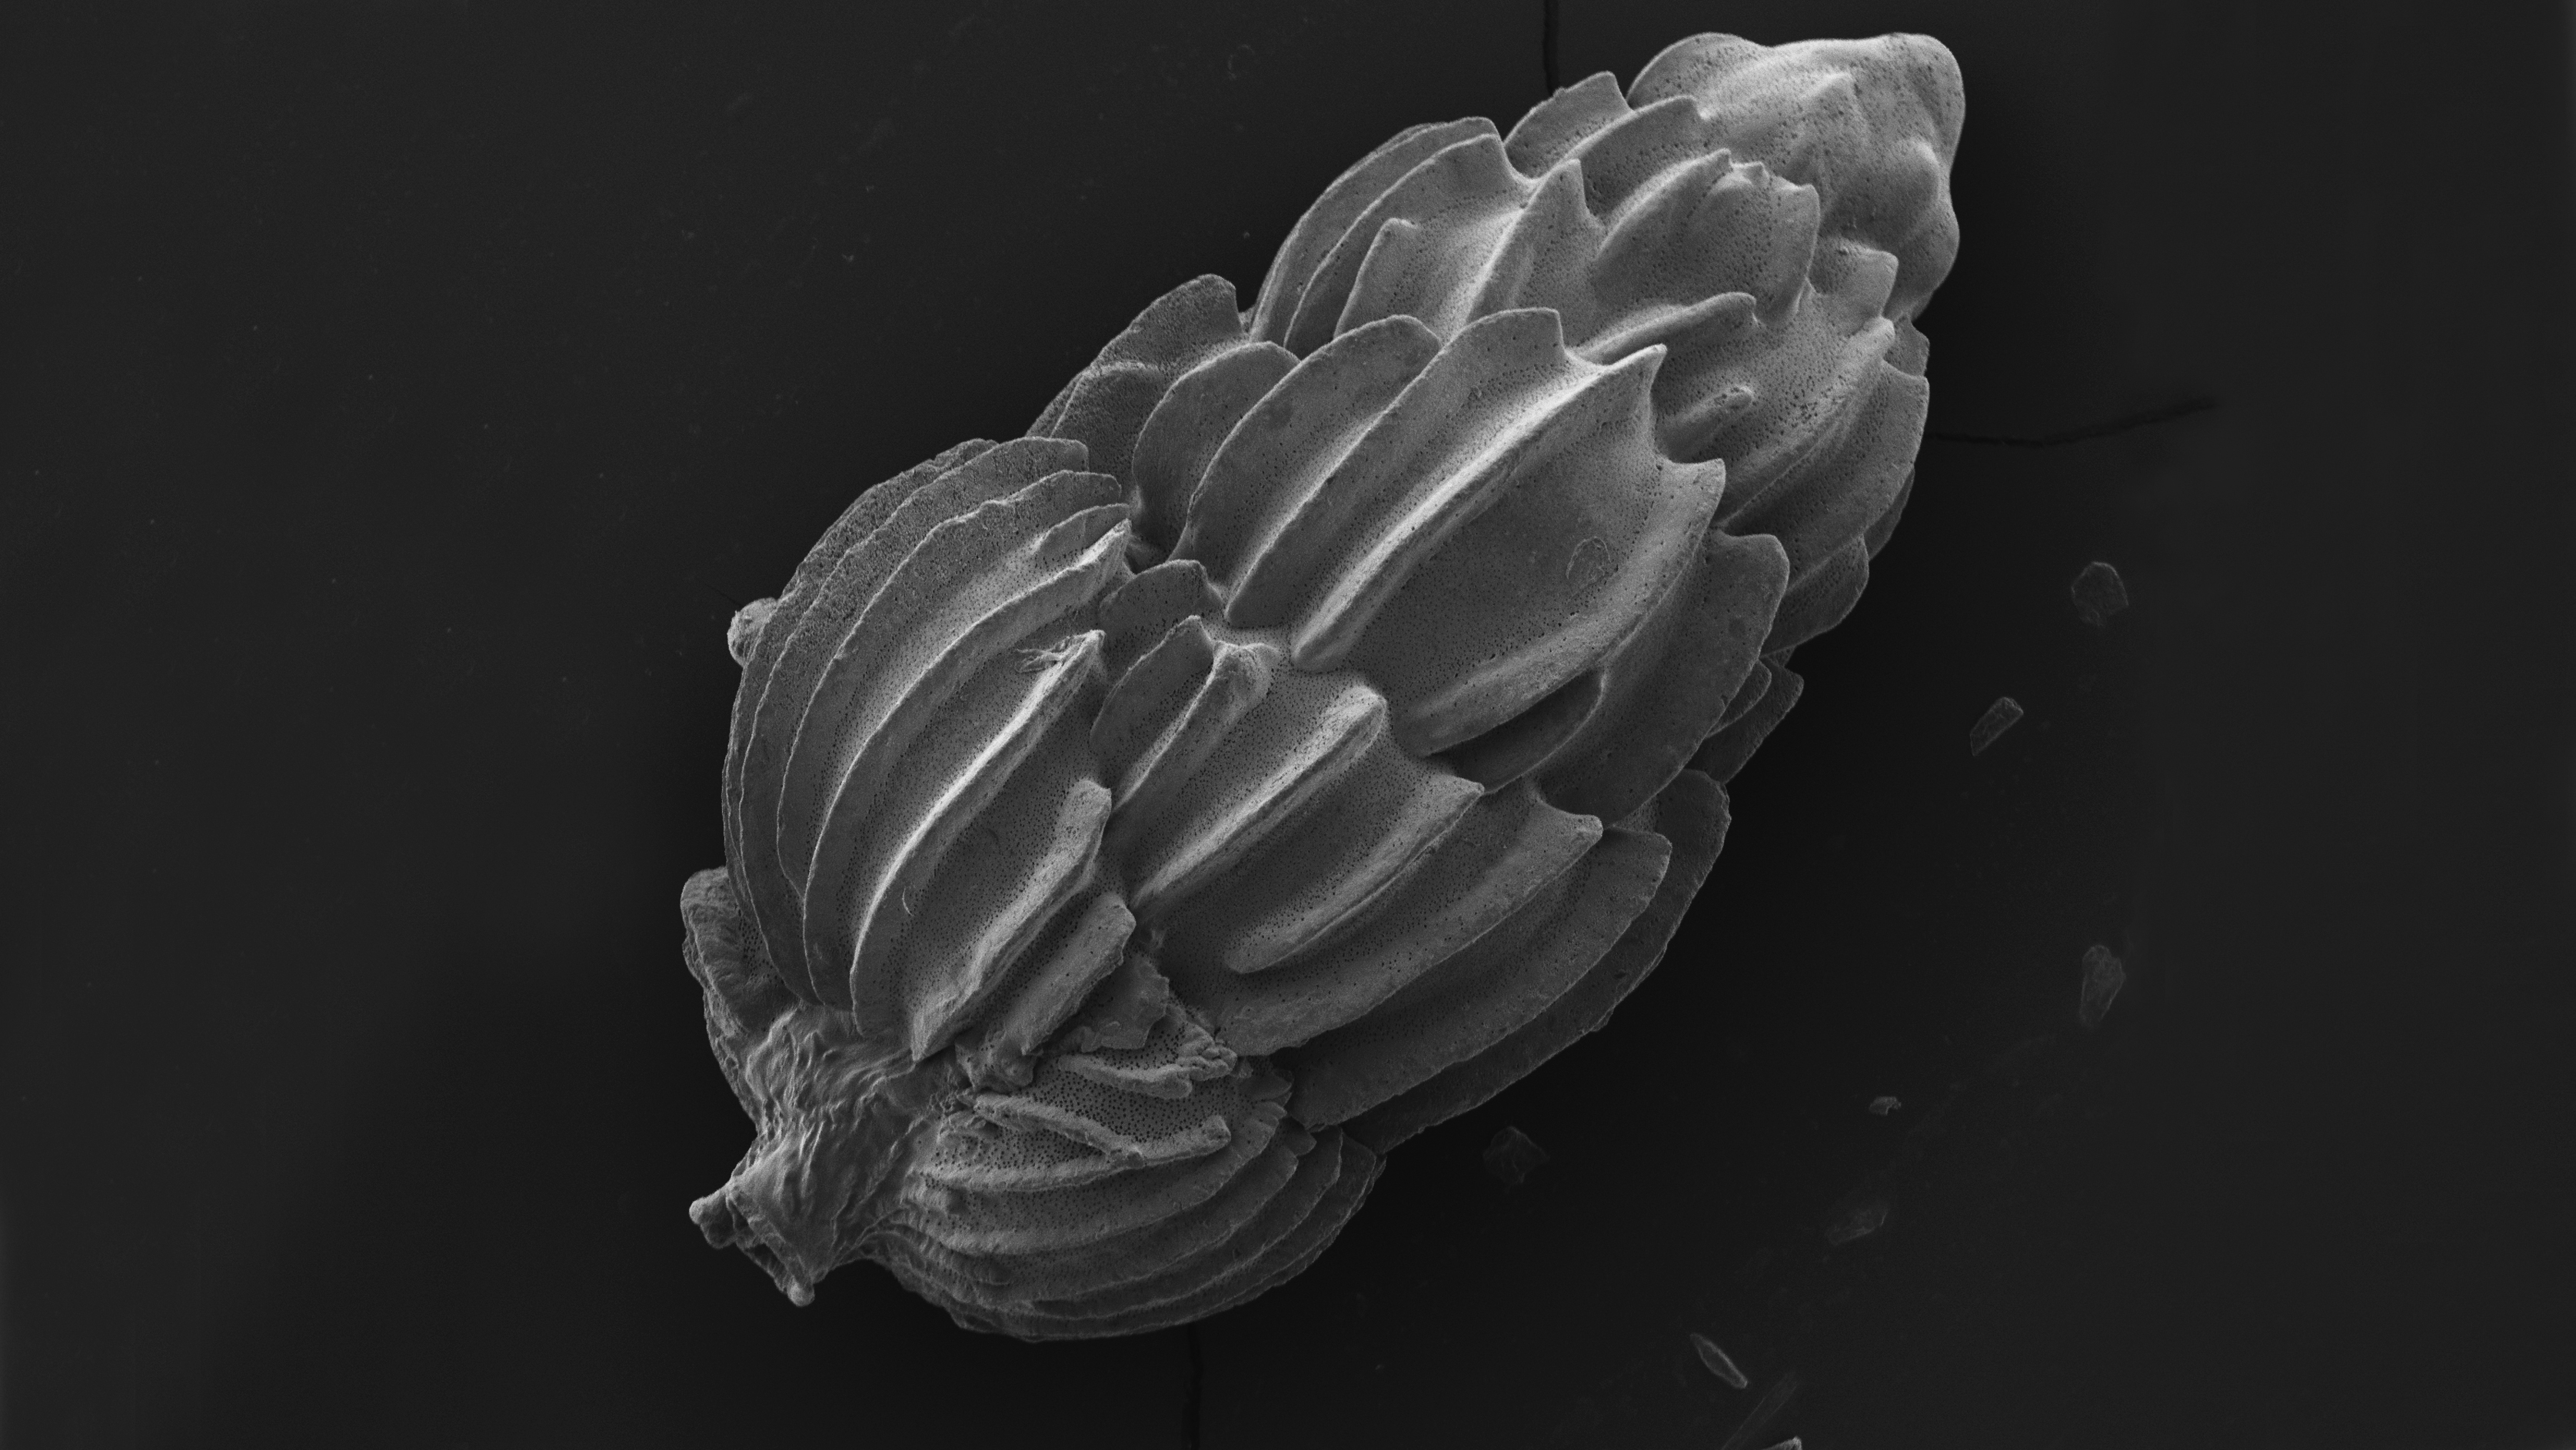 Microscopic image in black and white